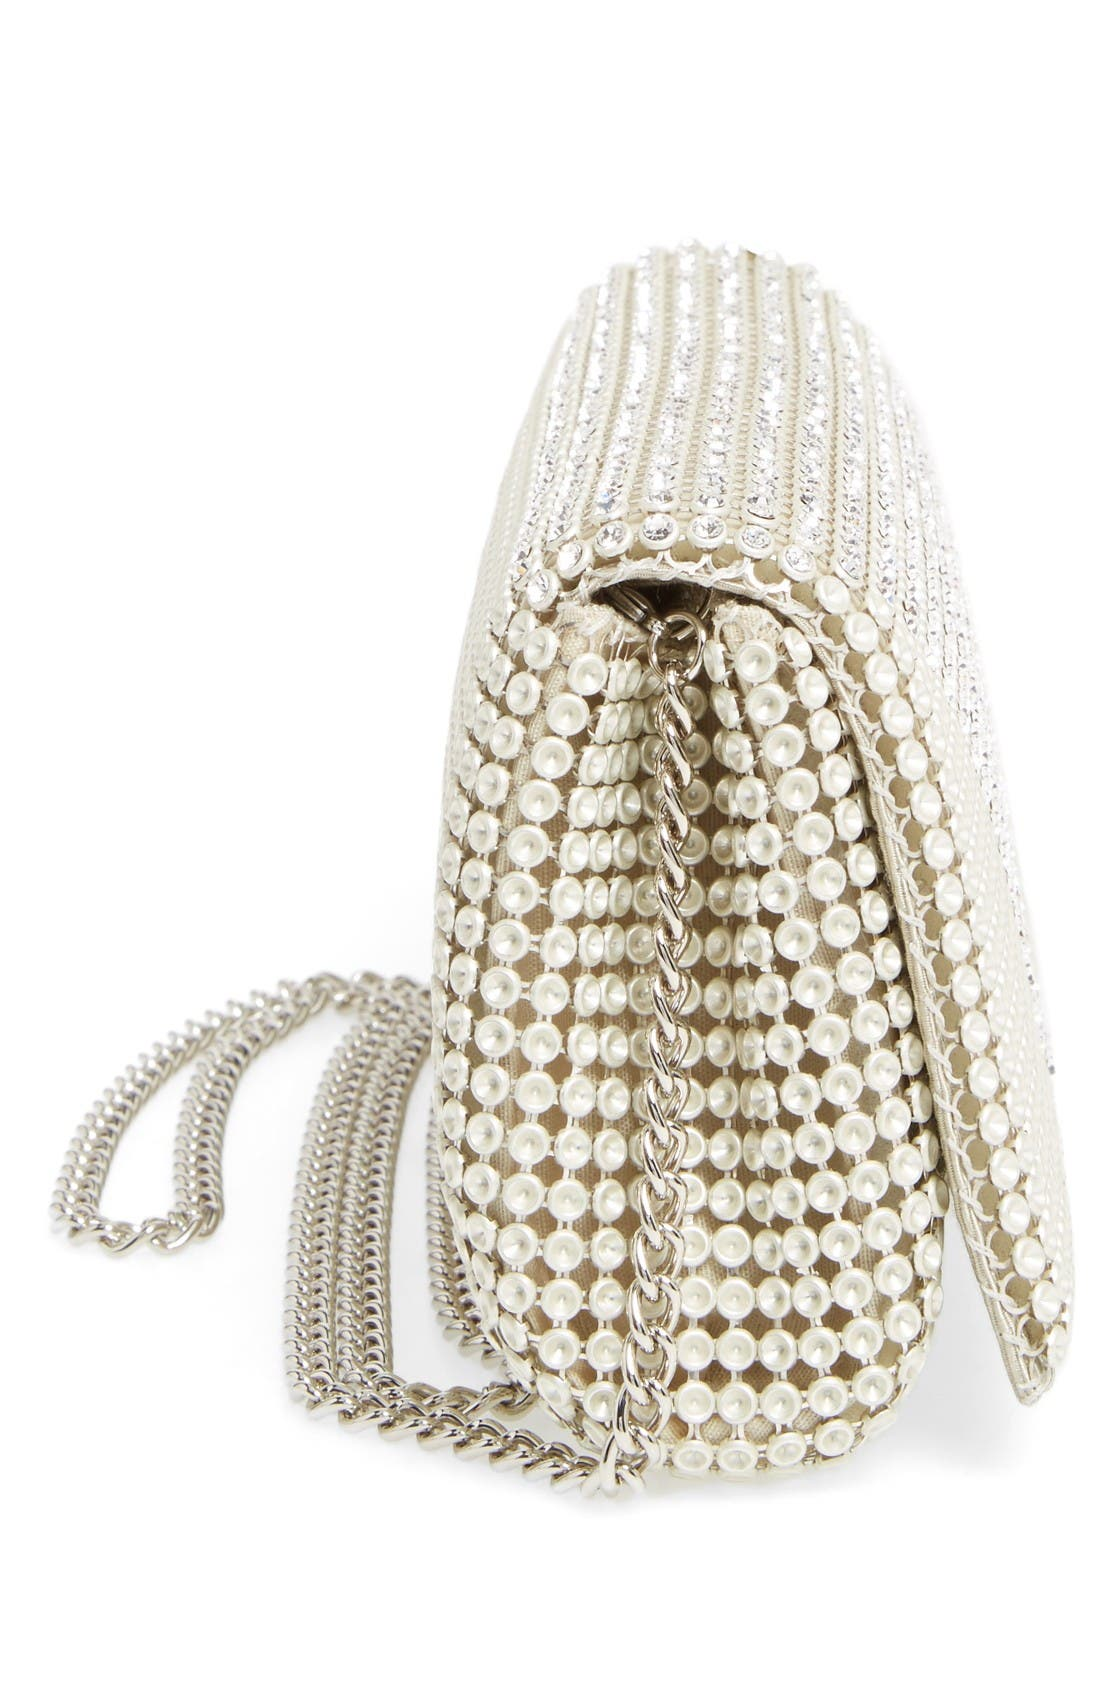 Crystal Triangle Clutch,                             Alternate thumbnail 4, color,                             Pearl